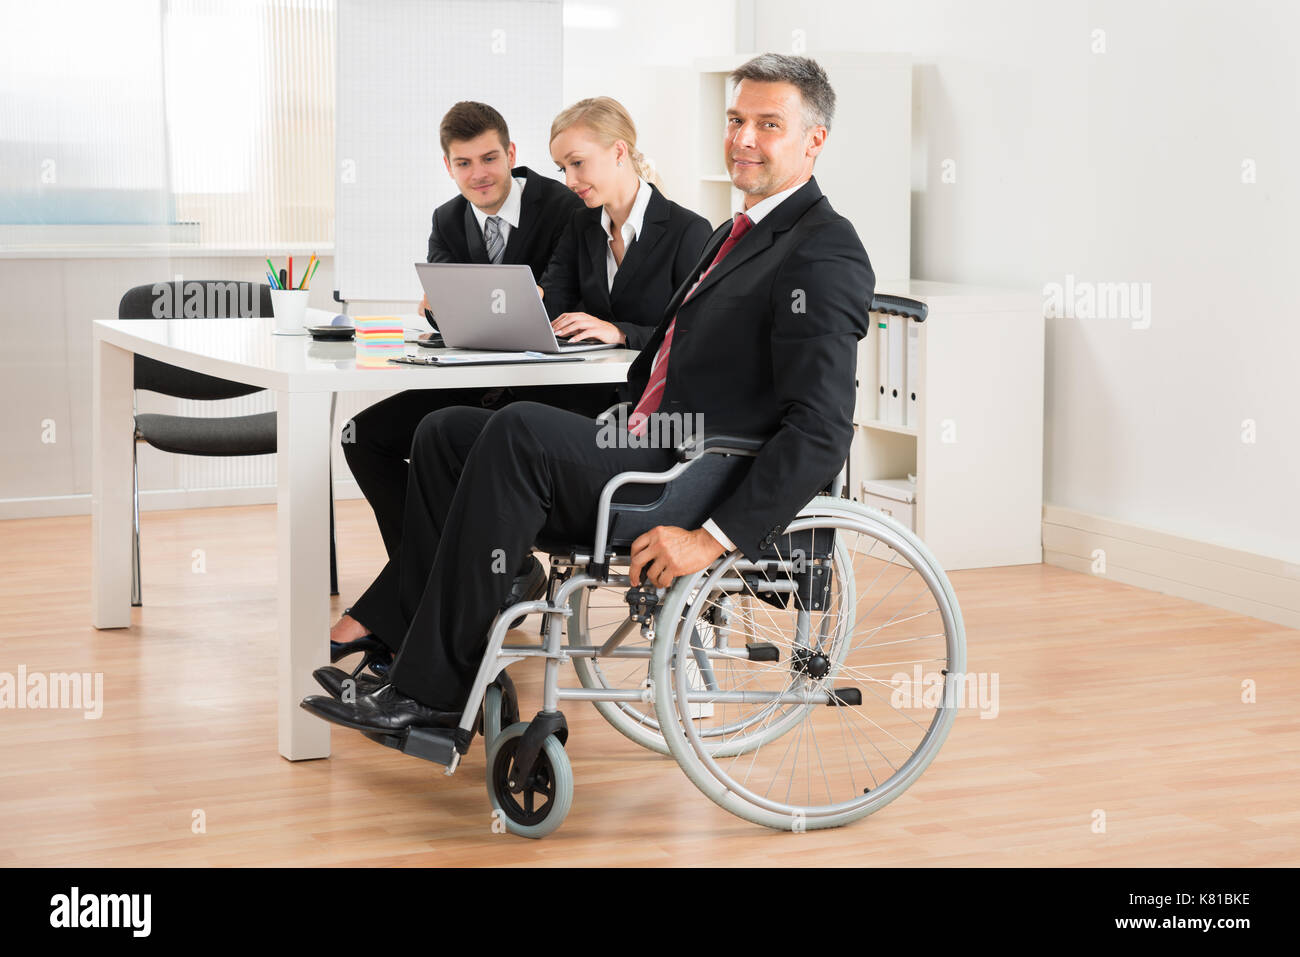 wheelchair jobs monte rocking chair review disabled young job stock photos and